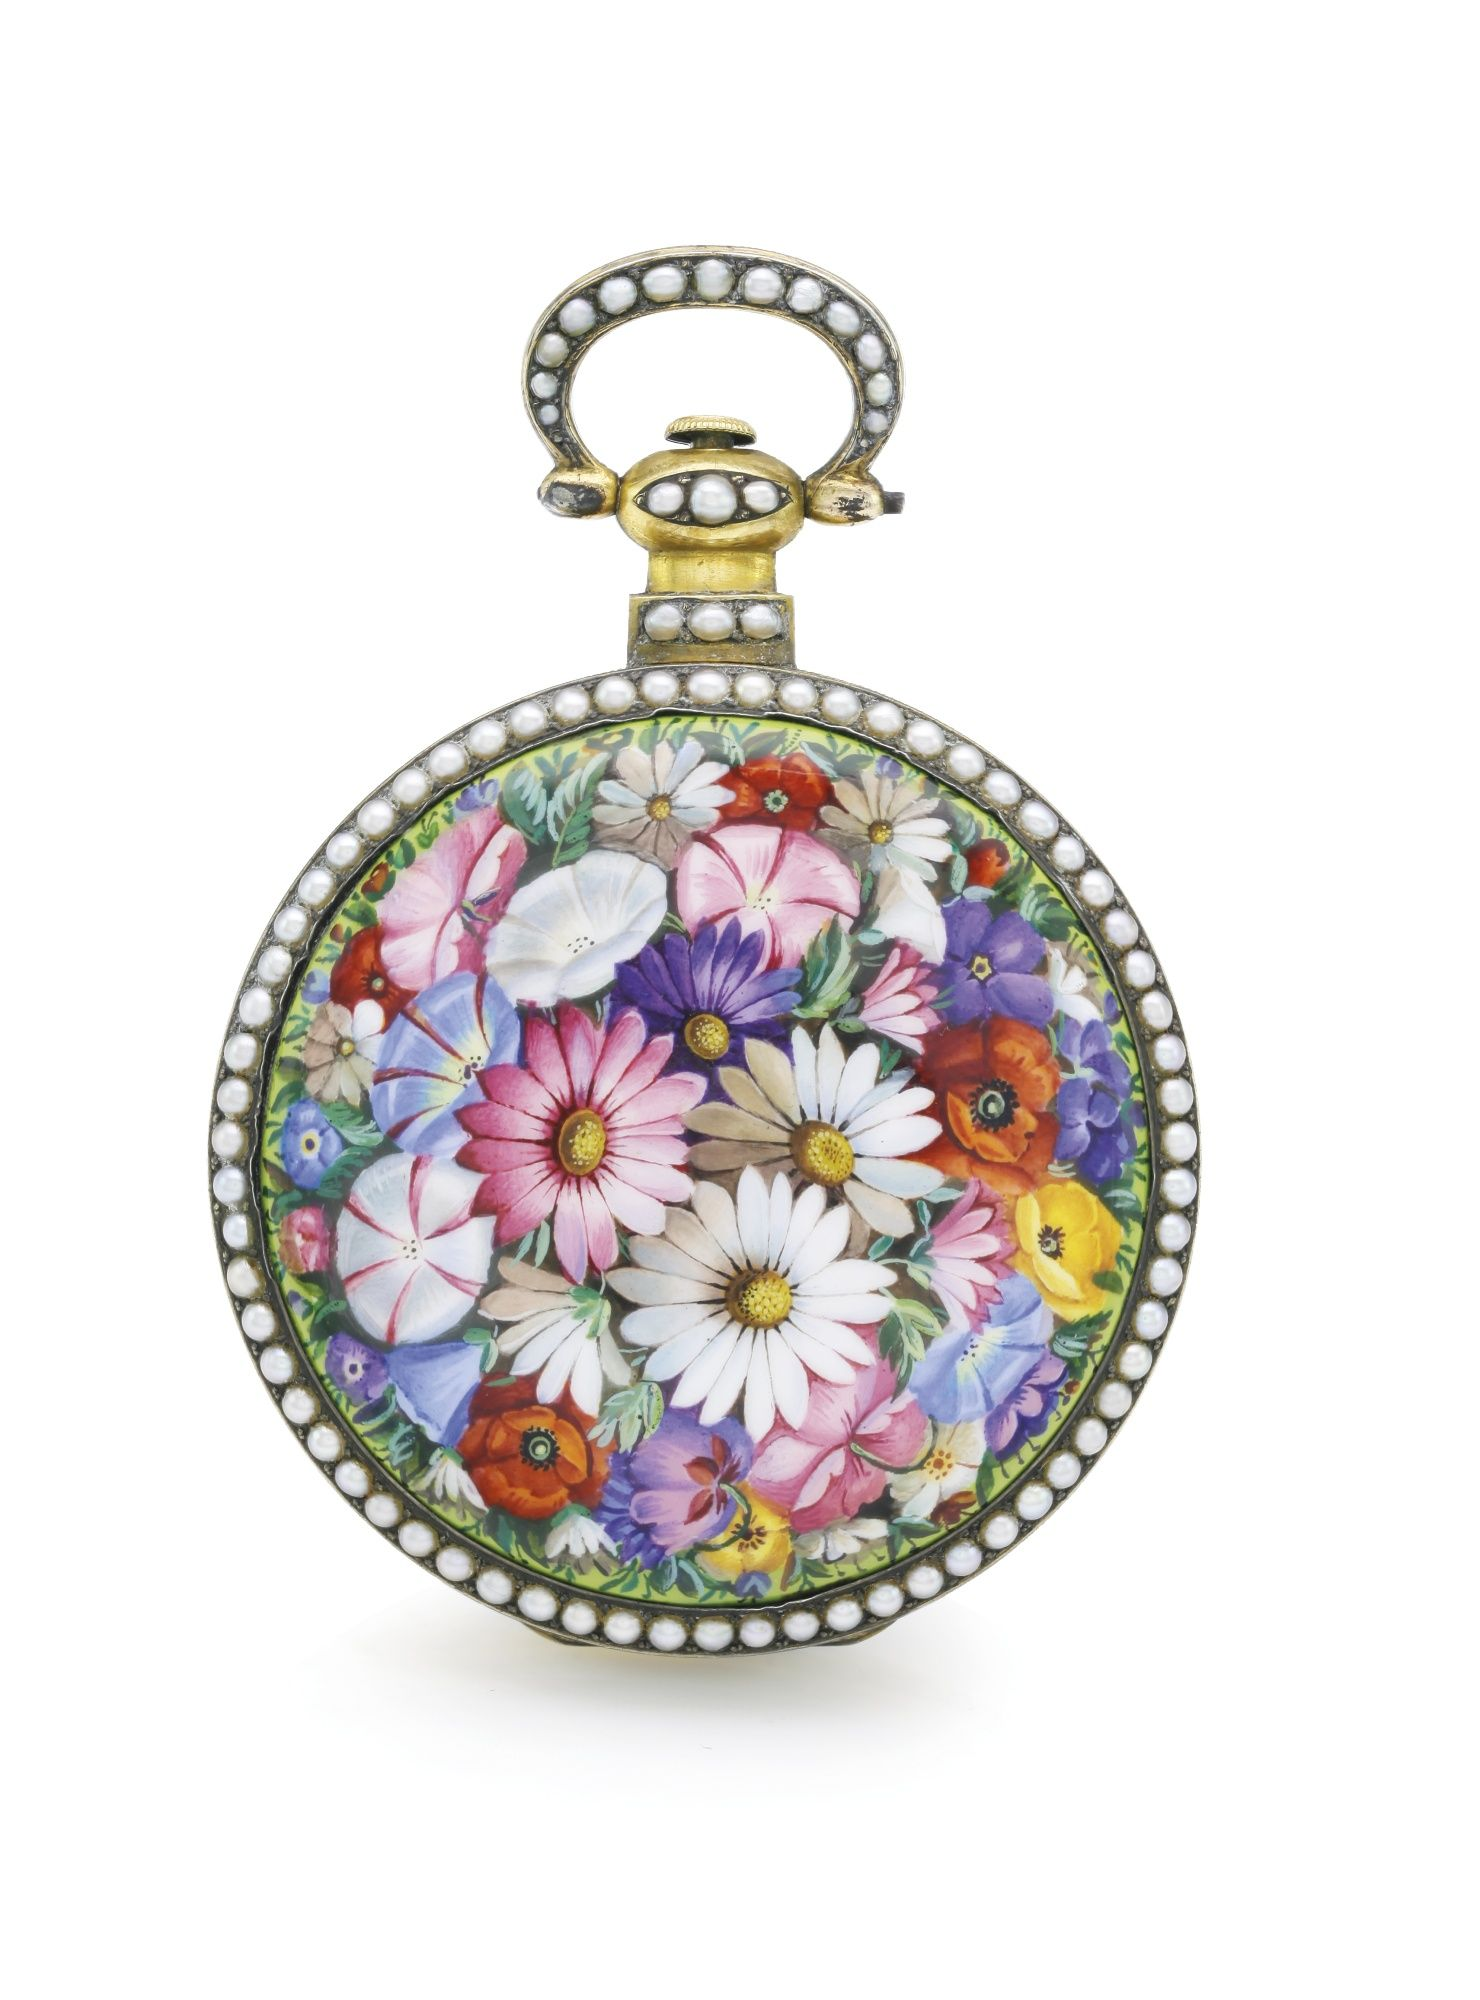 BOVET, FLEURIER A GILT METAL, ENAMEL AND PEARL-SET CENTRE SECONDS WATCH MADE FOR THE CHINESE MARKET CIRCA 1860 • jewelled gilt lever movement, finely chased and engraved with foliate scrolls • glazed cuvette • white enamel dial, Roman numerals, outer minute divisions • gilt metal case, the back with polychrome enamel depicting summer flowers, both bezels and bow highlighted with split pearls • movement signed diameter 56 mm